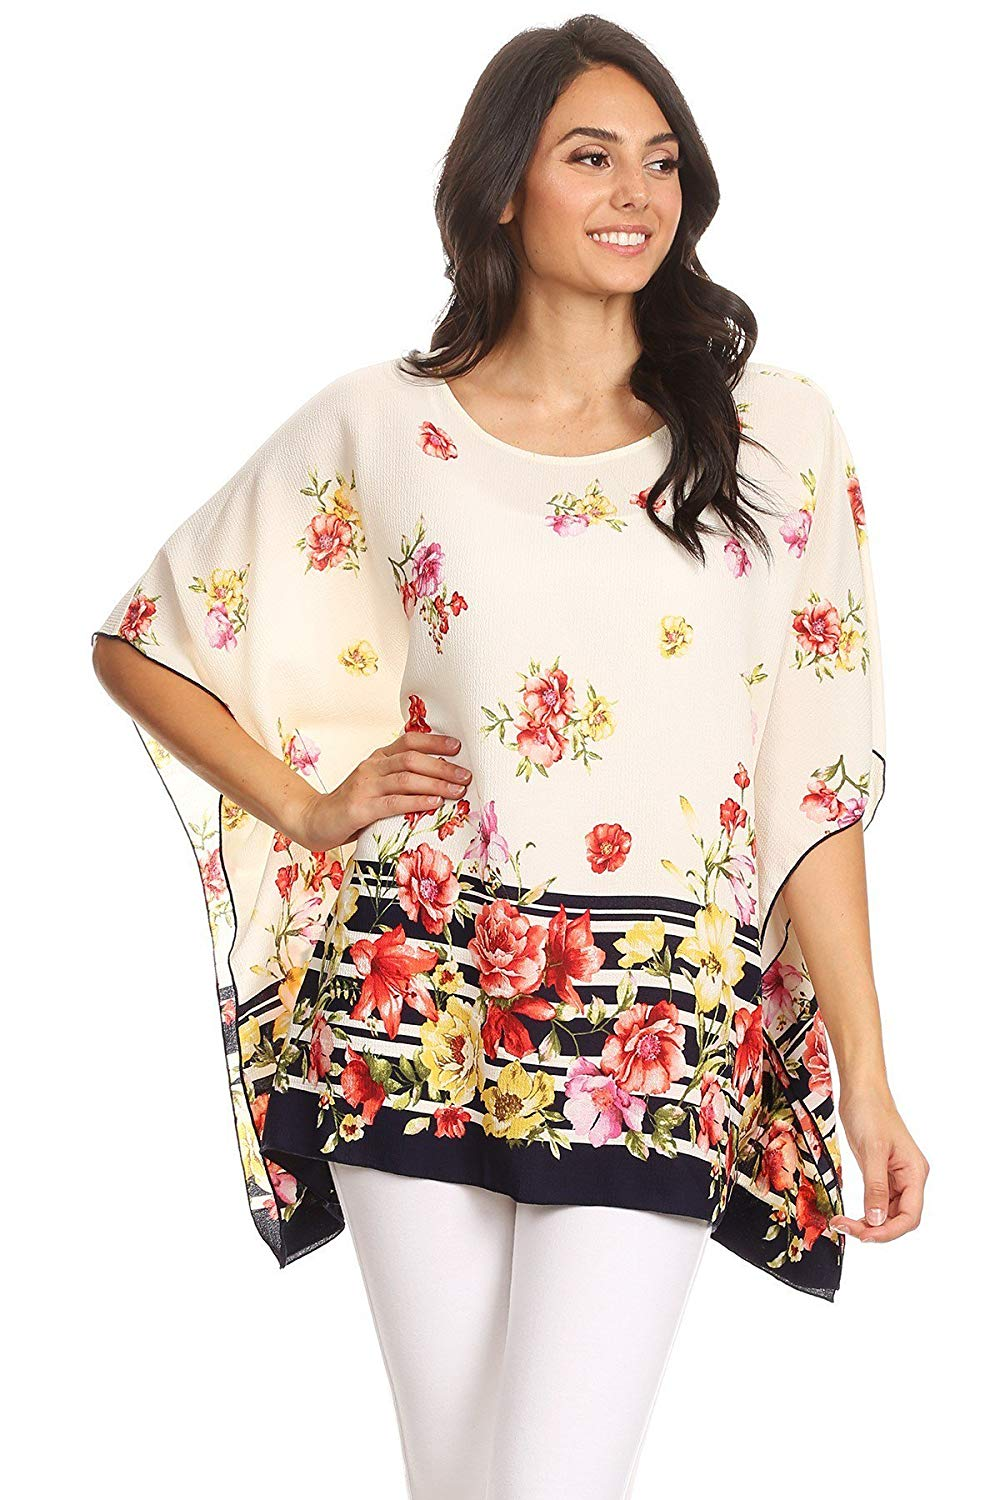 5772ea1935b Get Quotations · Modern Kiwi Connie Floral Printed Chiffon Caftan Tunic Top